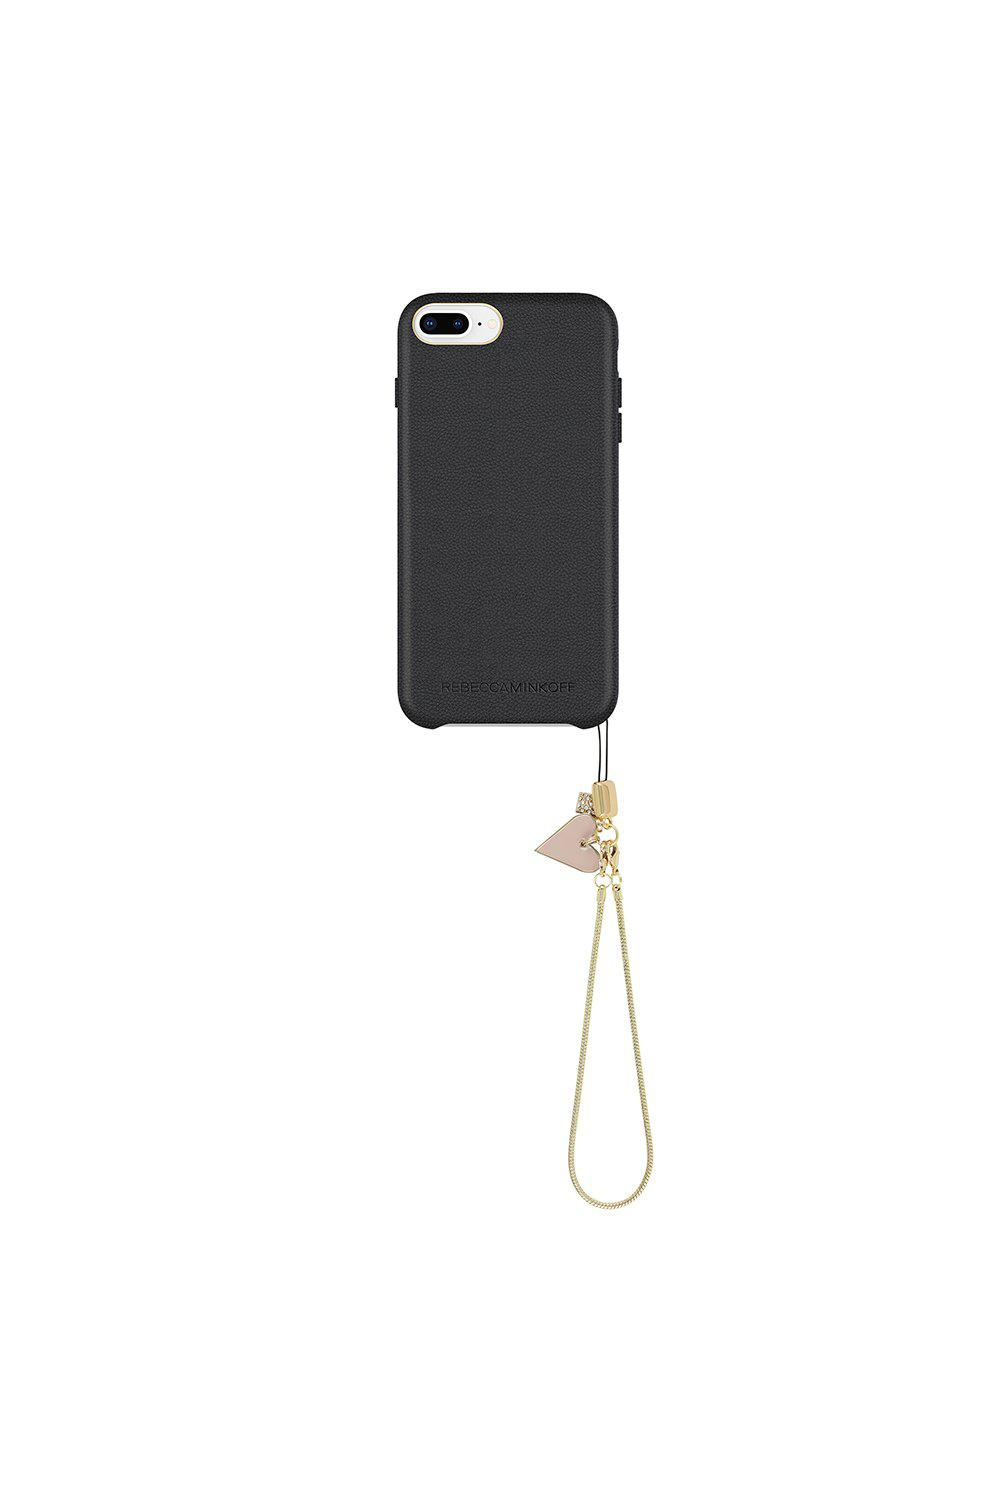 27c9ae0fb16c Rebecca Minkoff Leather Wrapped Case With Heart Charm Iphone 8 Plus ...